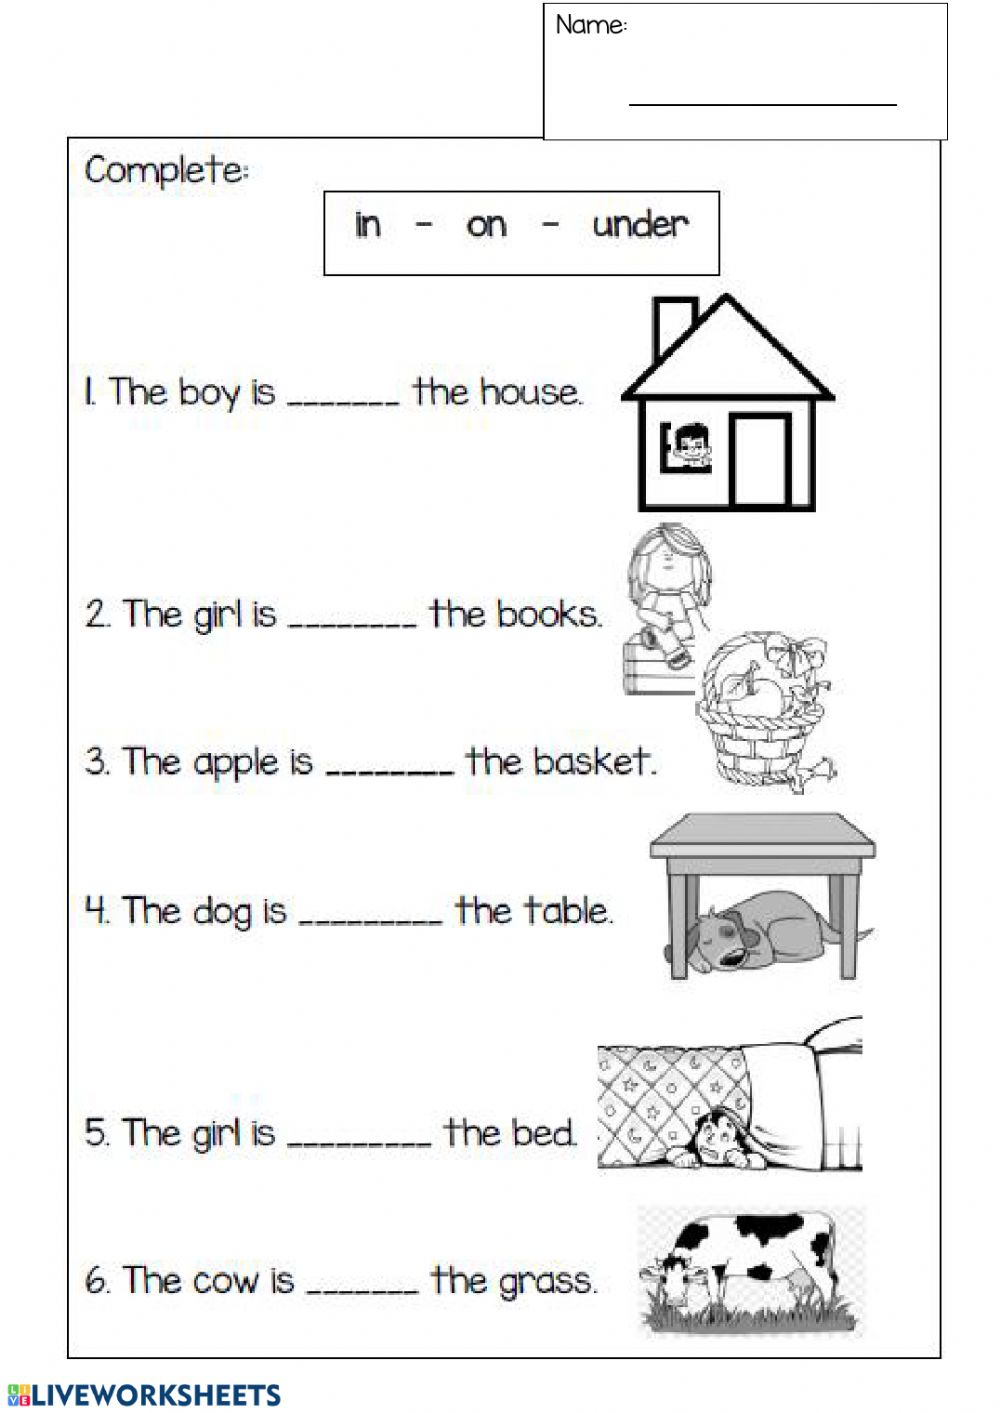 medium resolution of Prepositions interactive worksheet for 1st grade